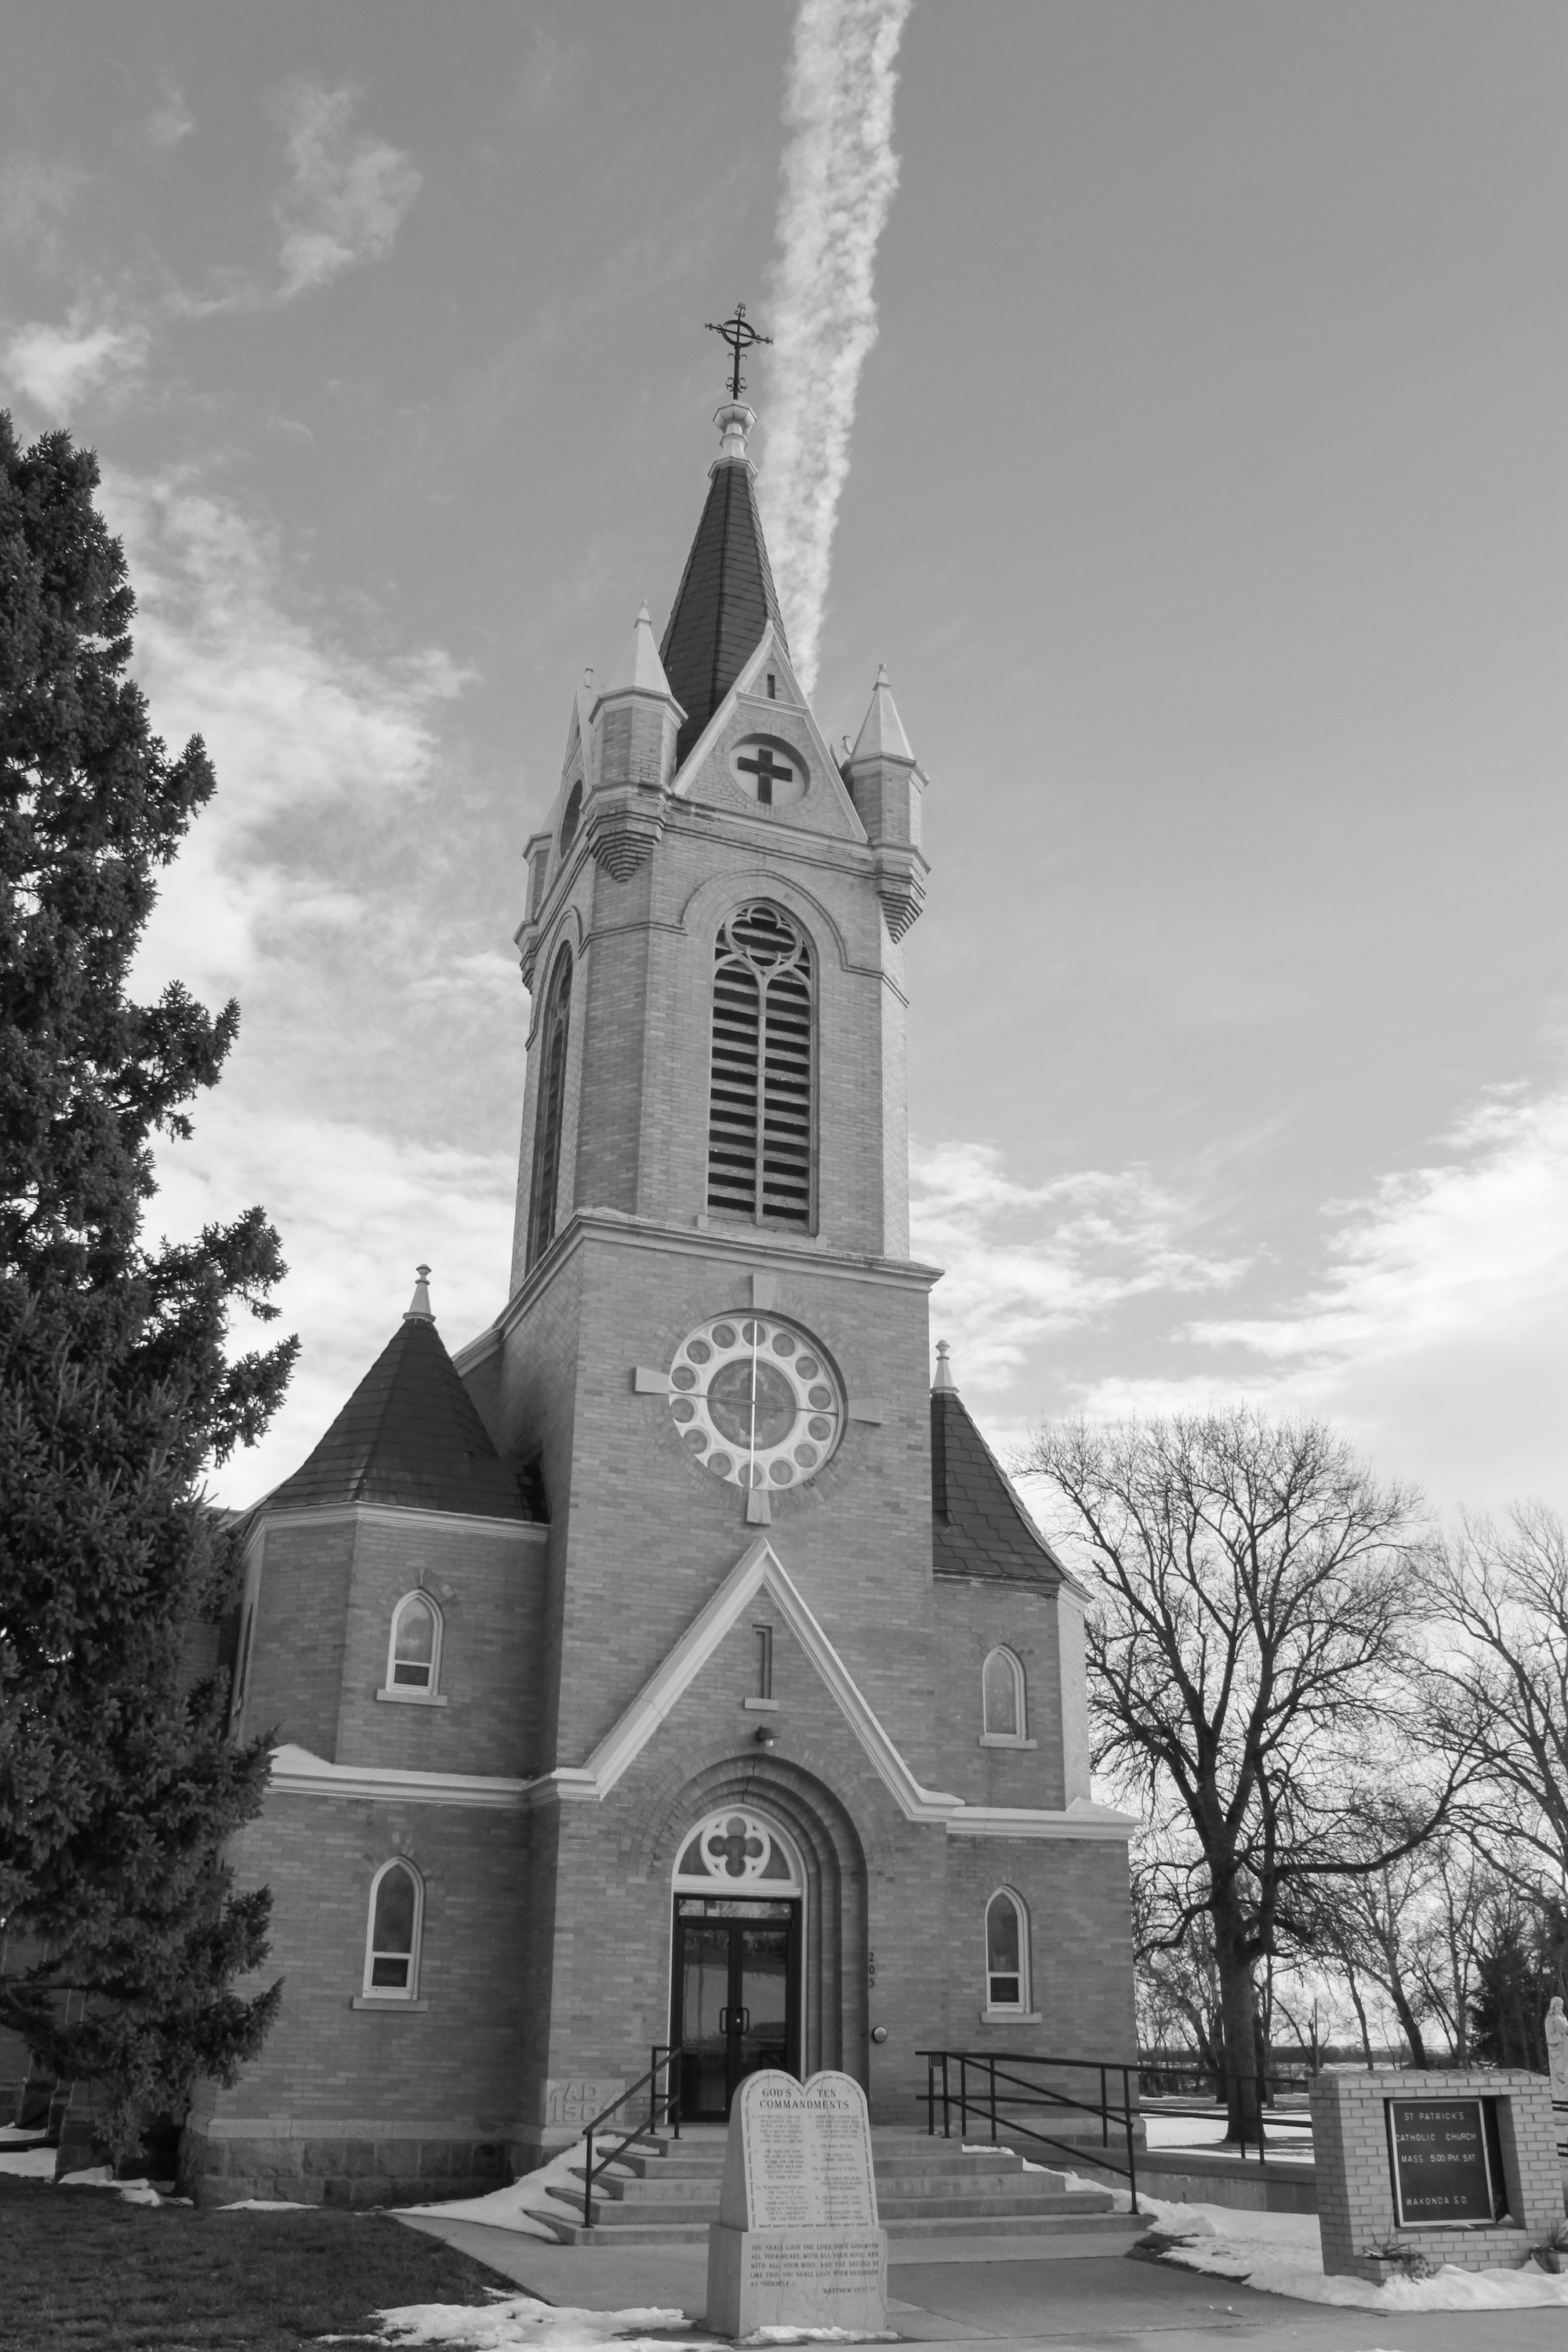 St. Patrick's Catholic Church in Wakonda.